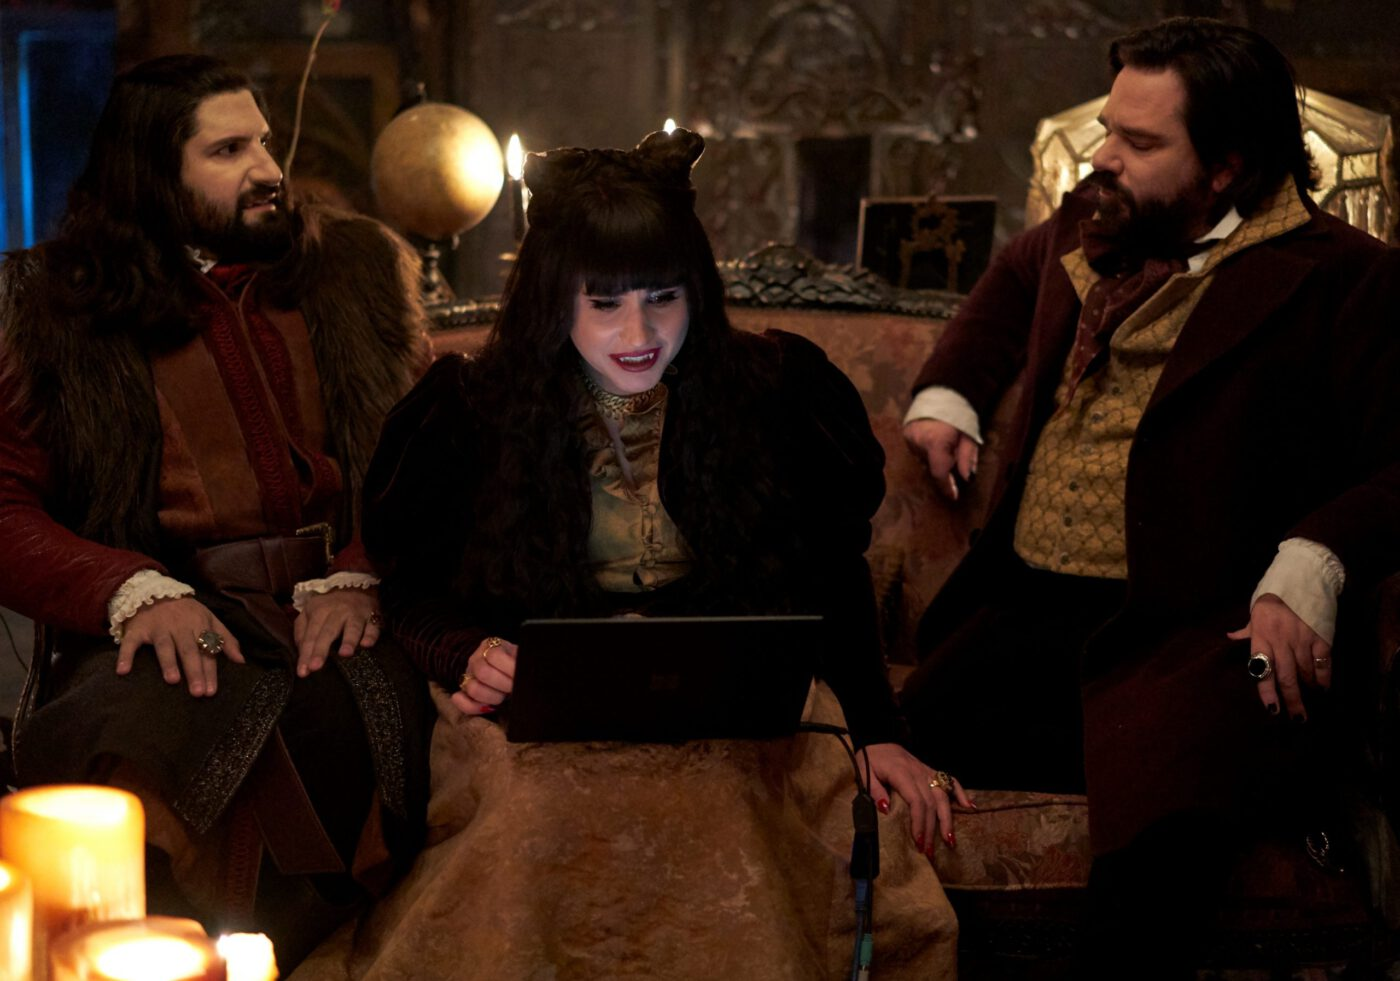 Still of Kayvan Novak, Natasia Demetriou, and Matt Berry in What We Do in the Shadows.